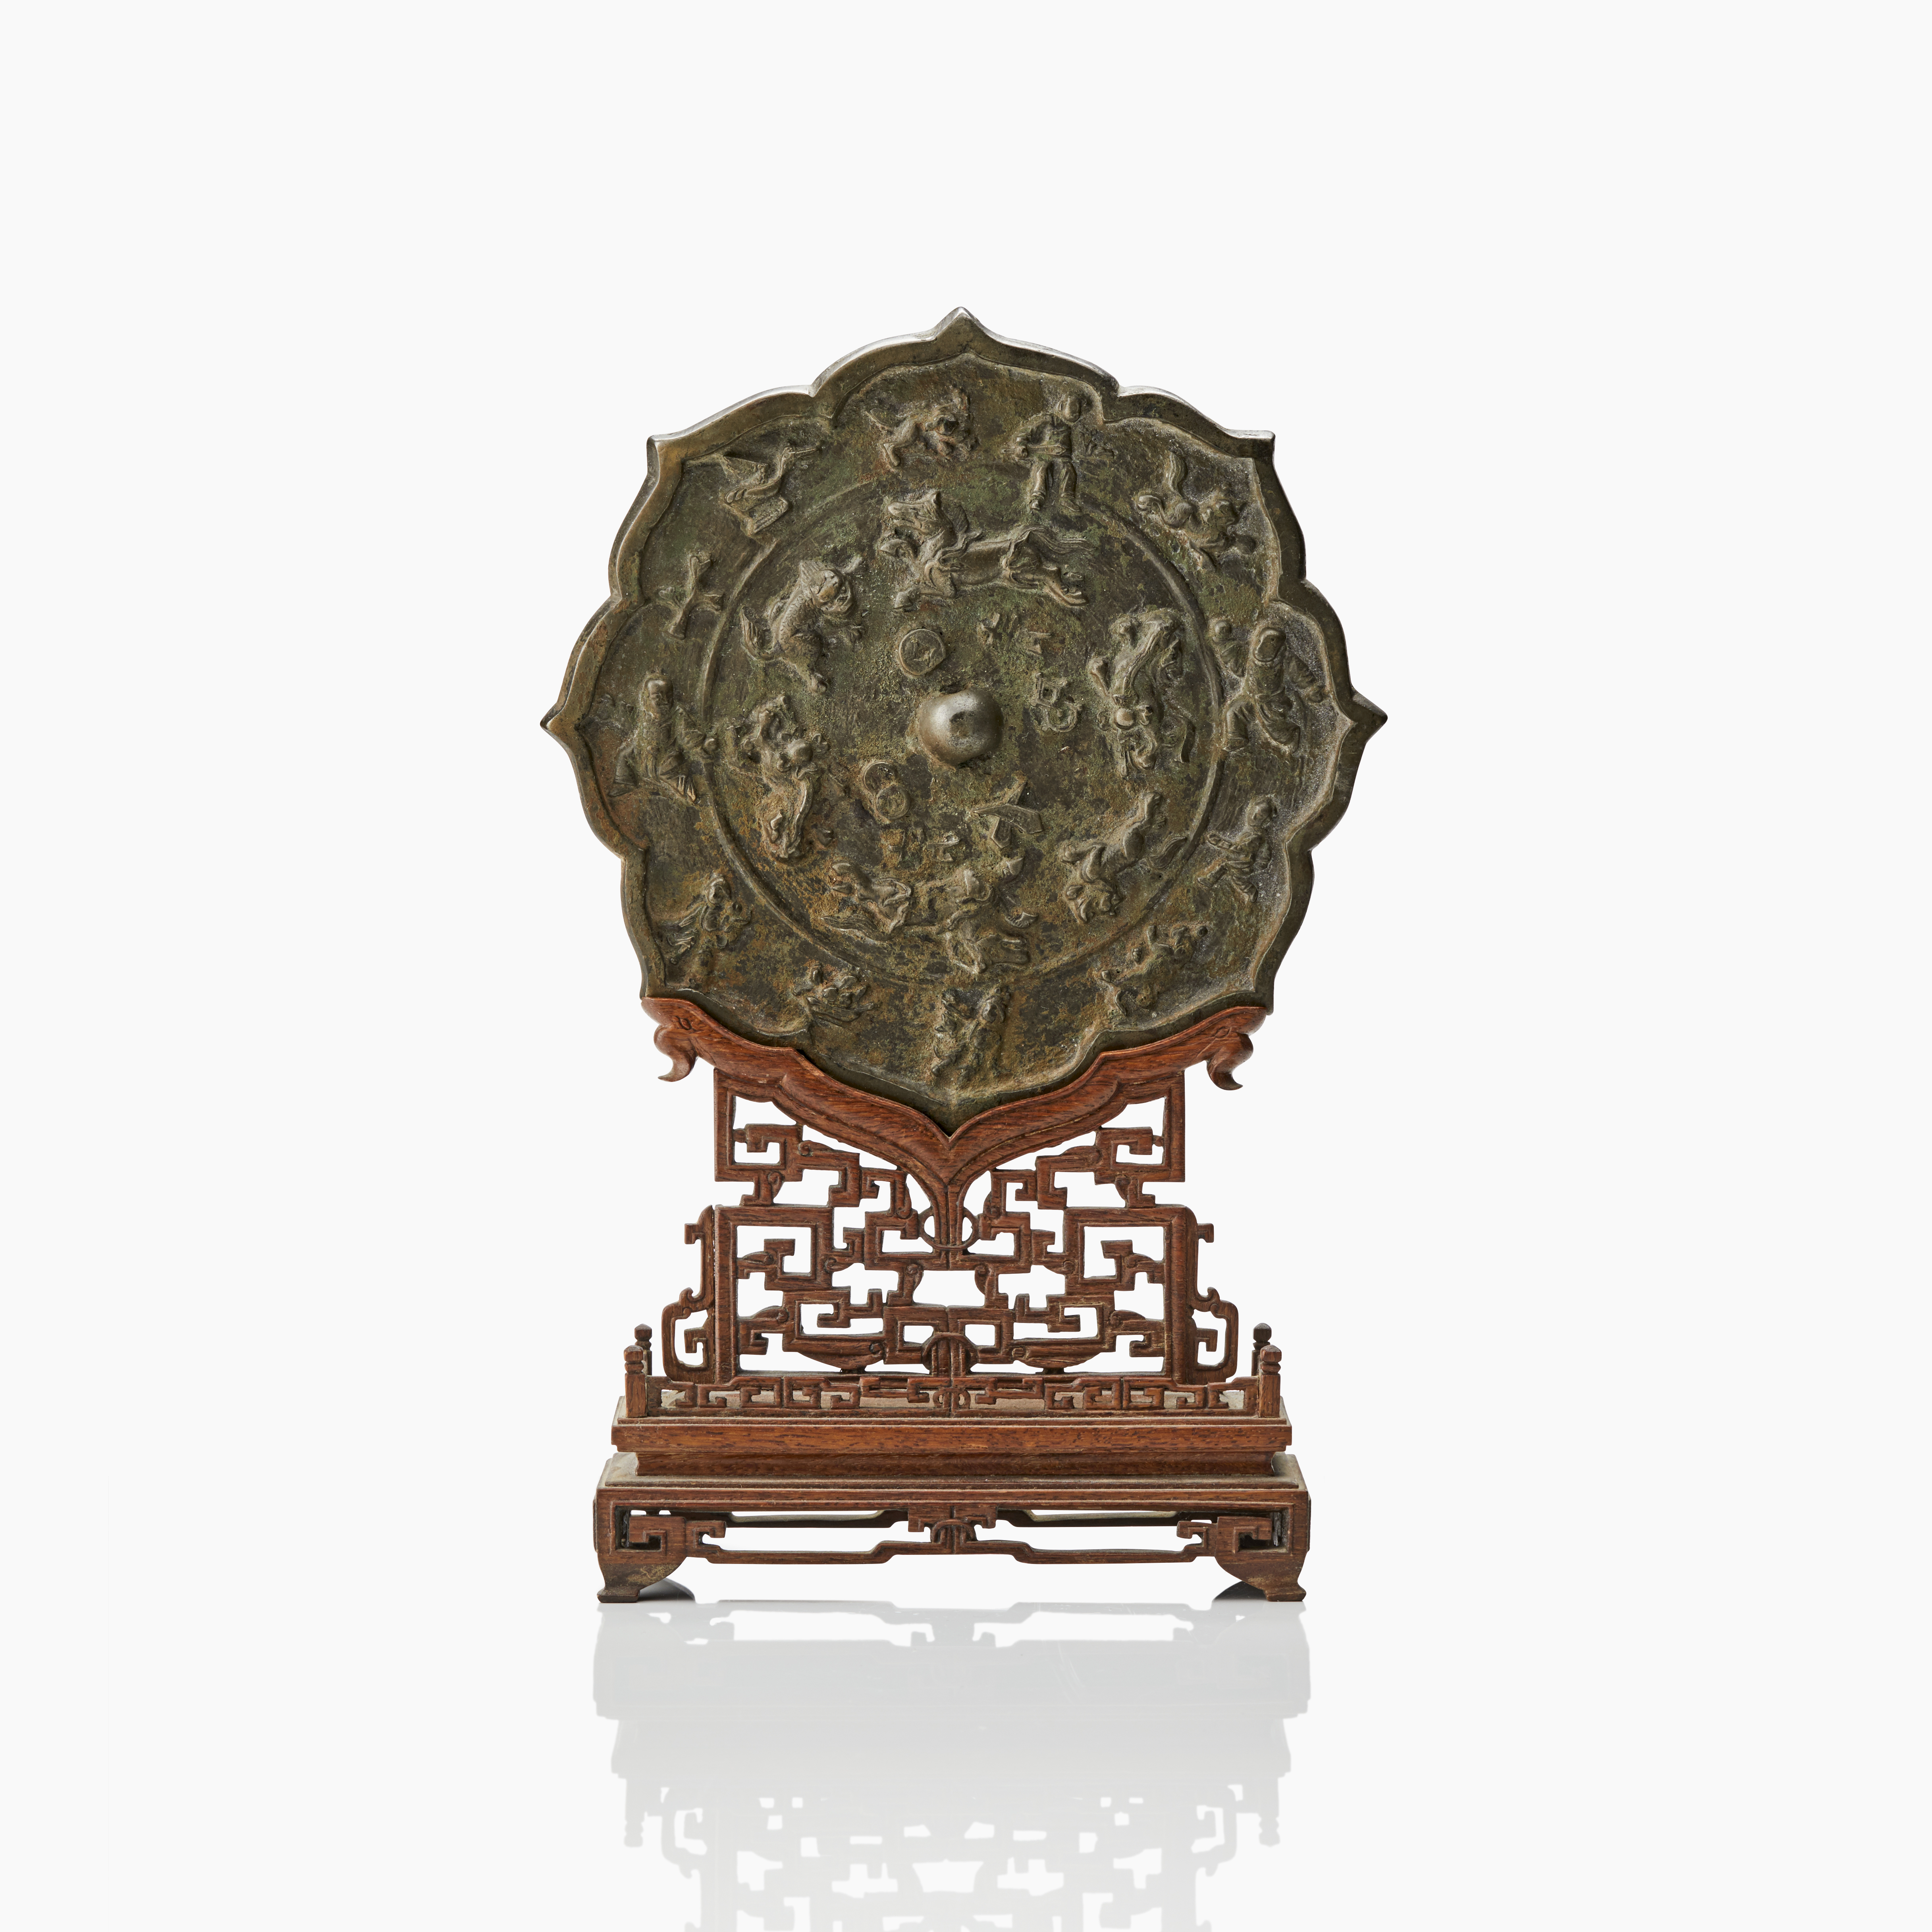 1208  A bronze mirror in a carved stand - Important sale 5